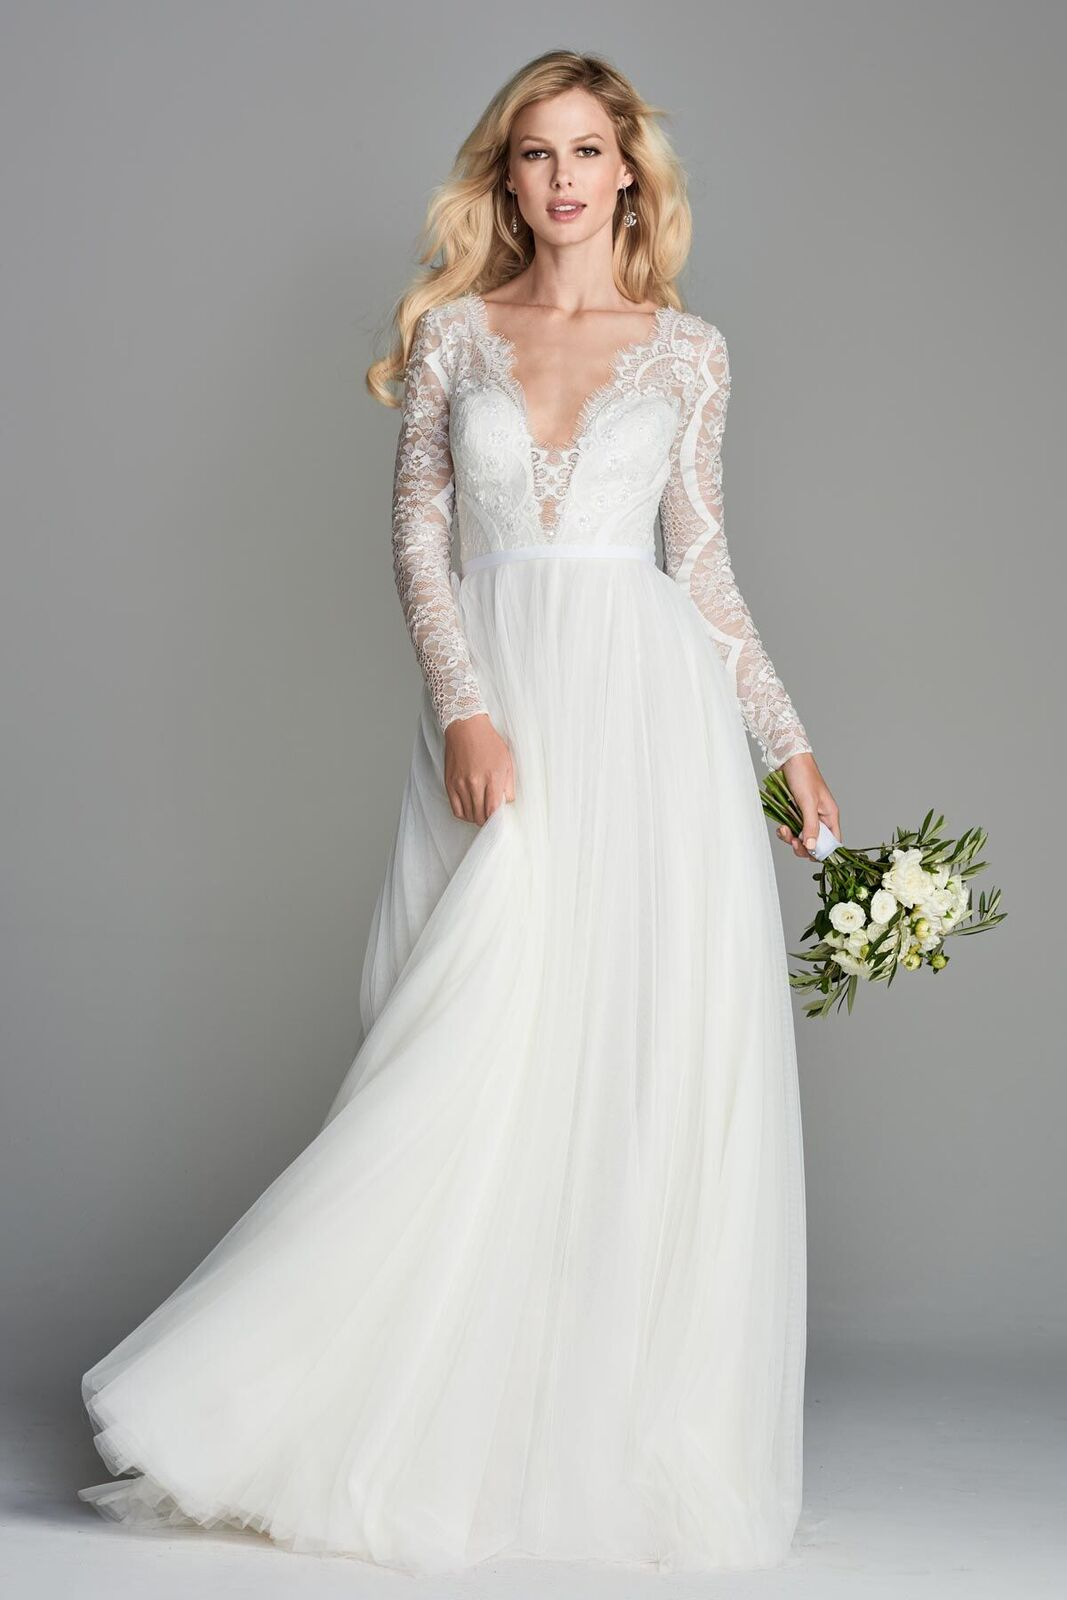 fefe47994e8c Naharah - 10708 By Wtoo Watters - Butterfly Bridal Boutique